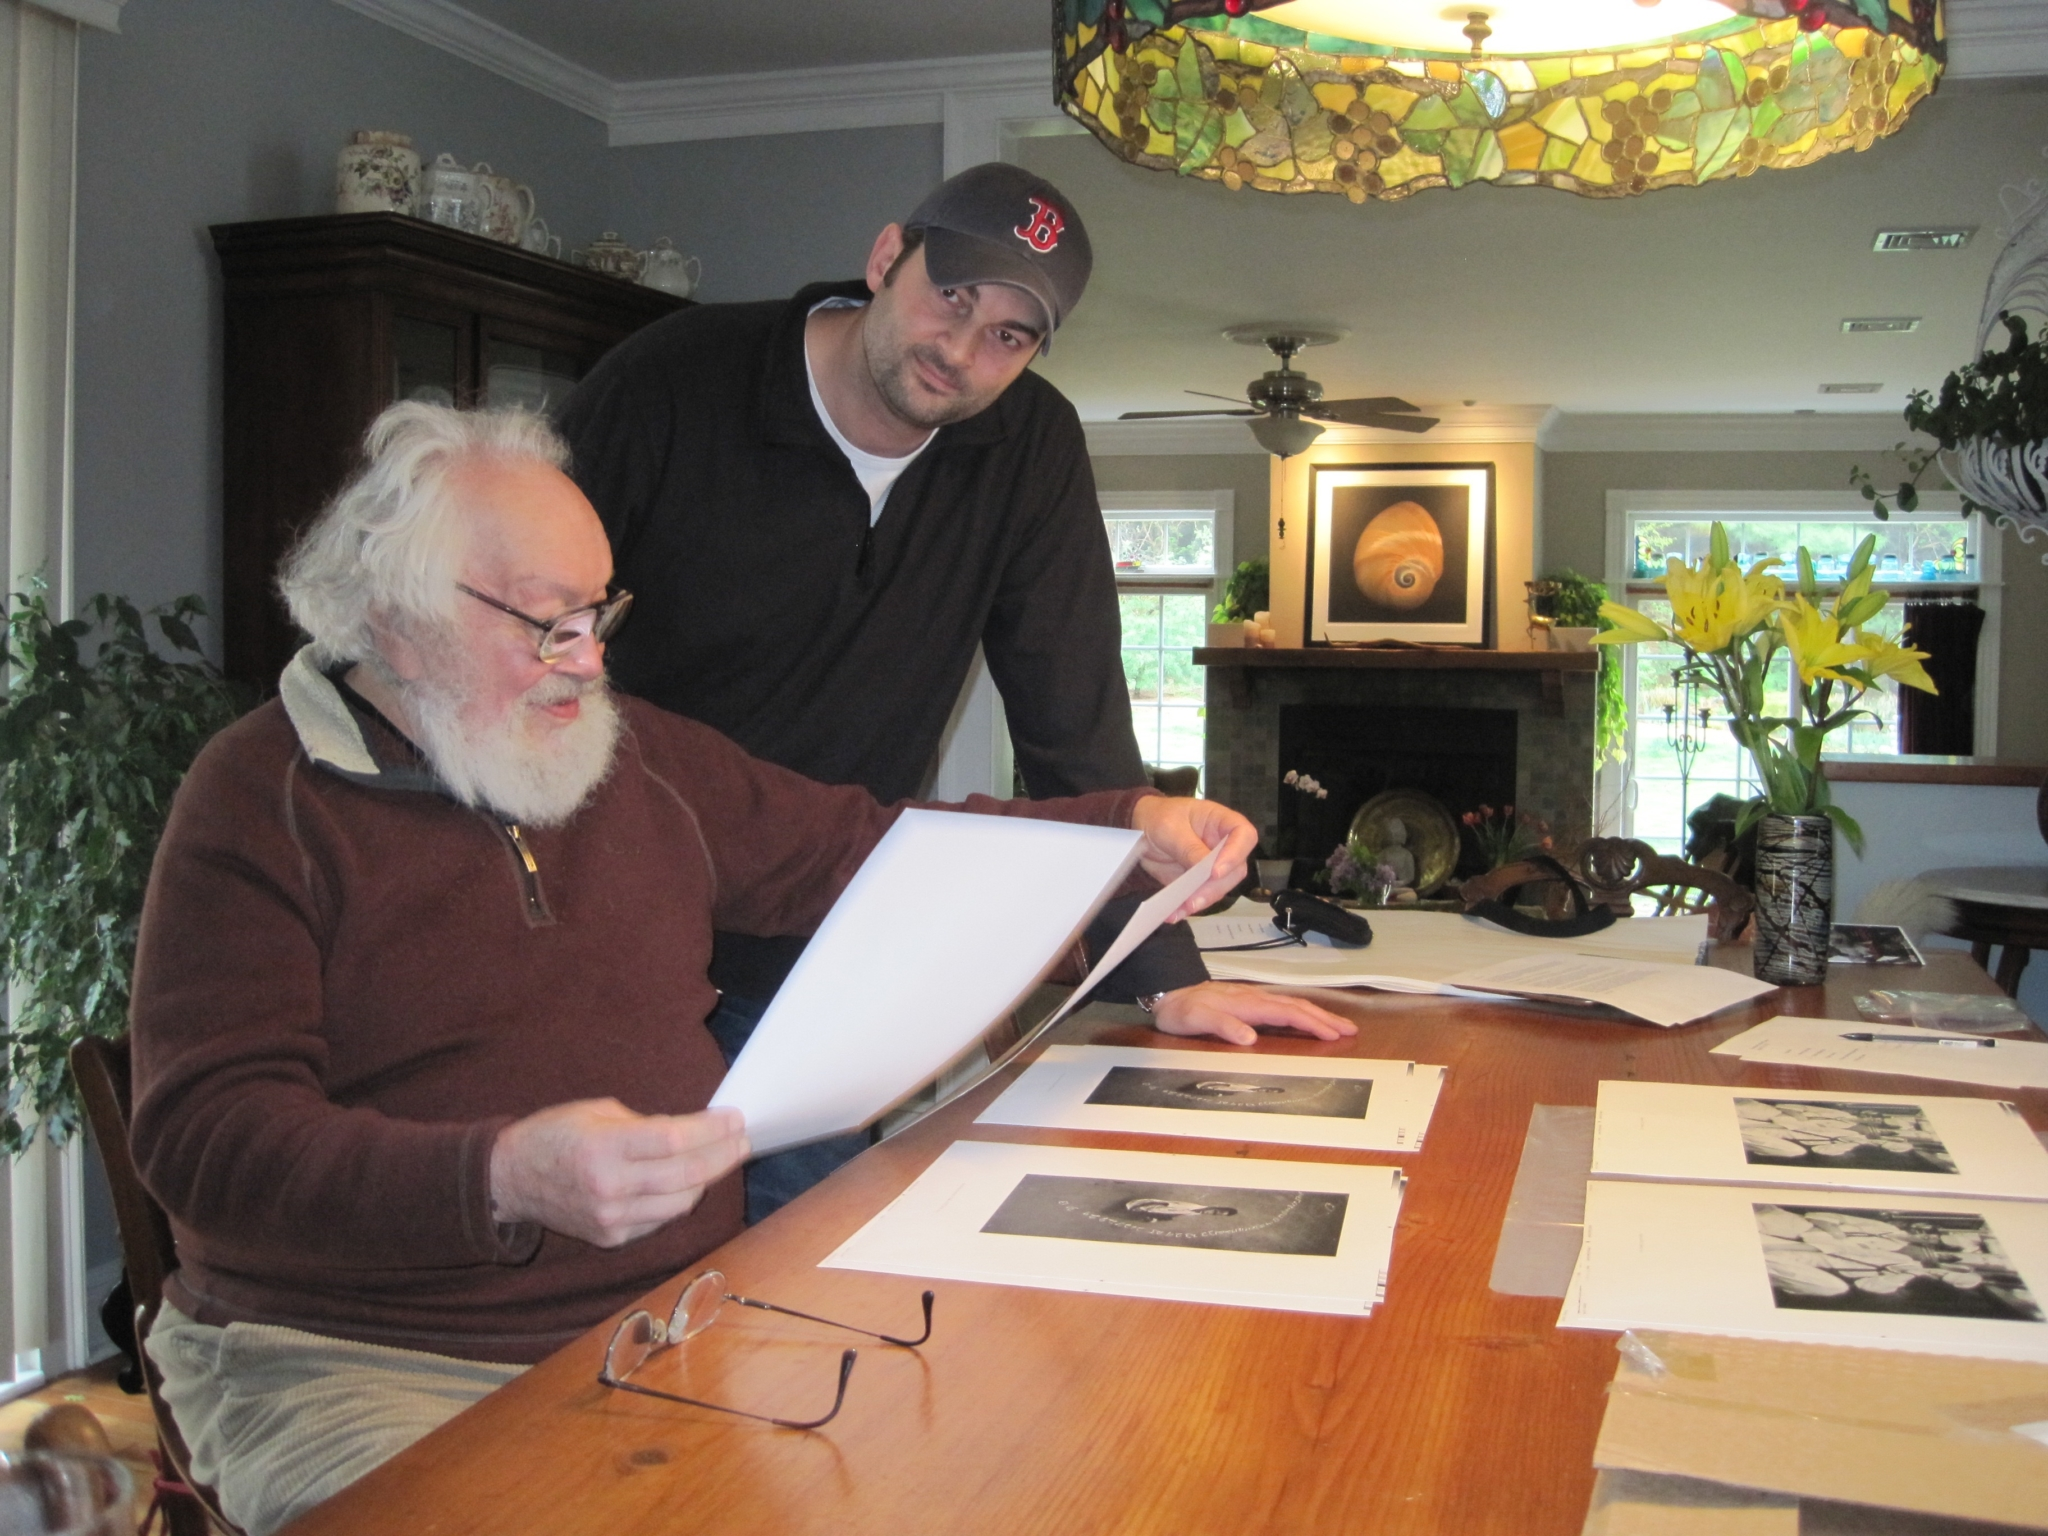 Harold commenting on photos from his Retrospective book with Jason Landry in May, 2012.